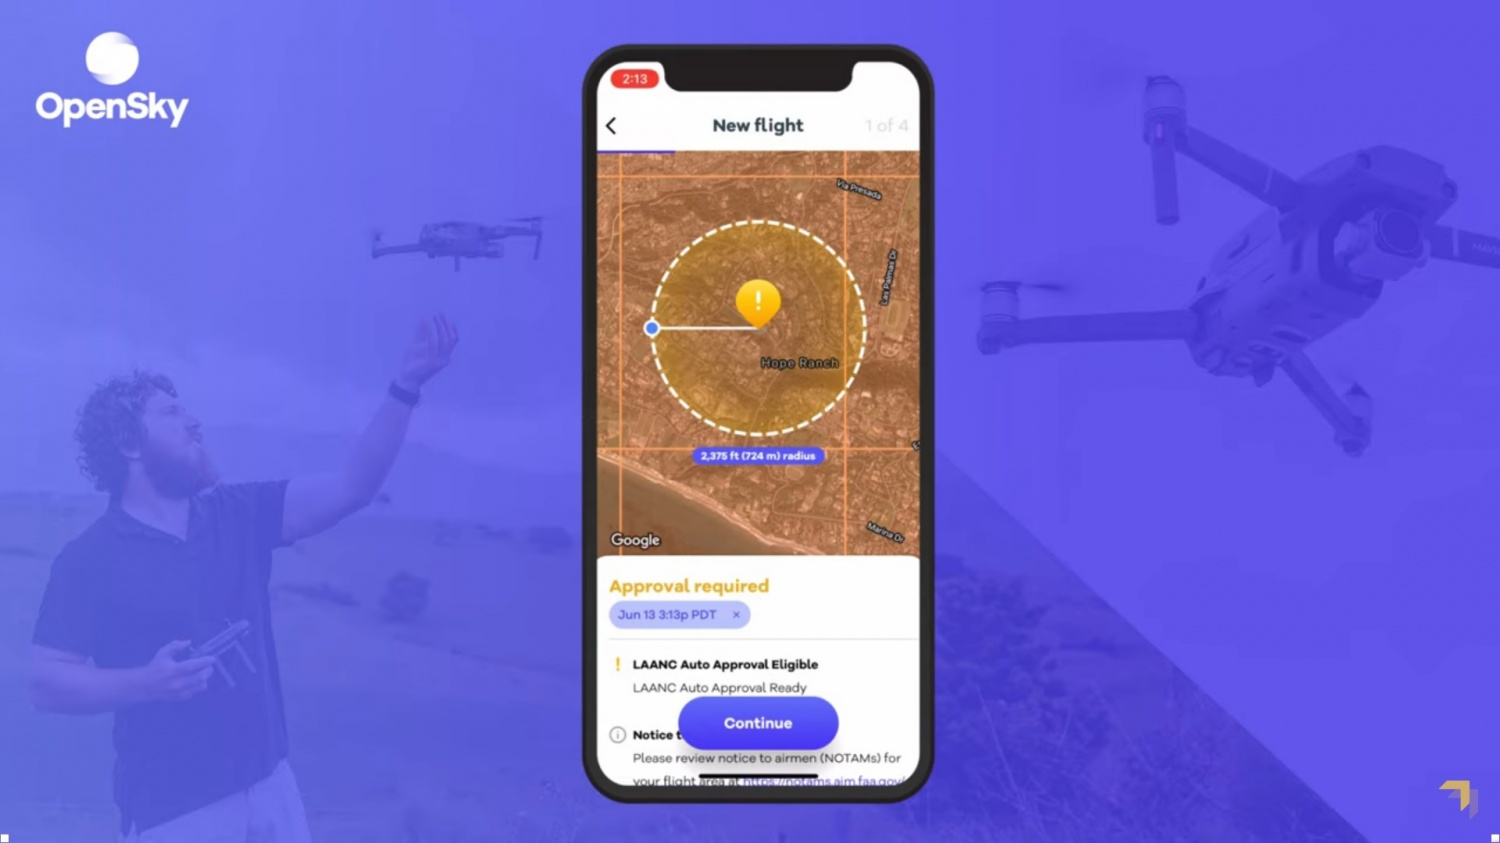 Google Wing's 'OpenSky' App to Launch in Android, iOS--Flying Drones is Now Easier Than Before